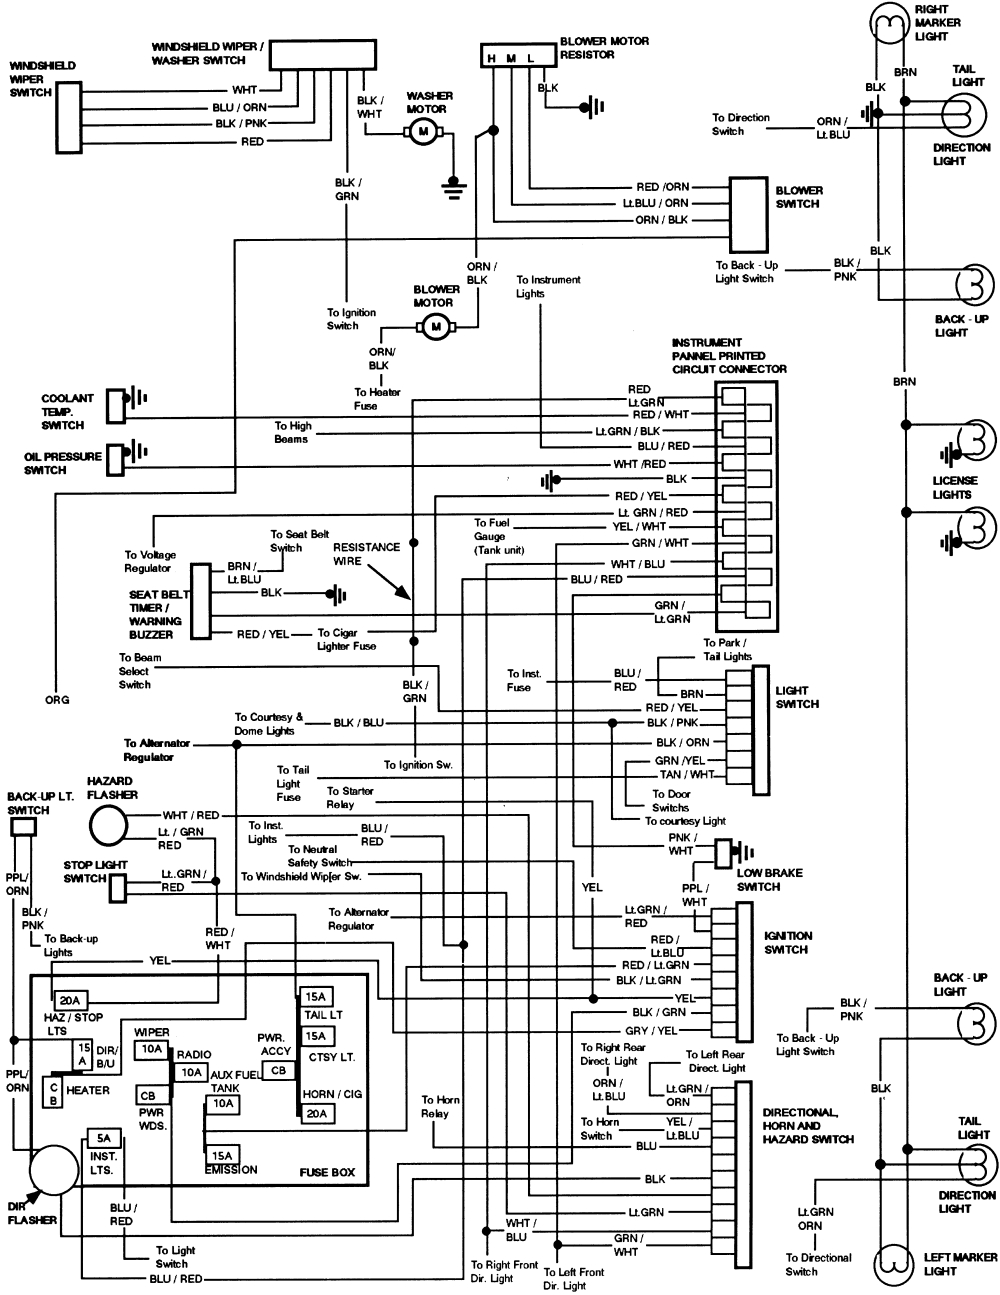 92 f700 ford wiring diagrams